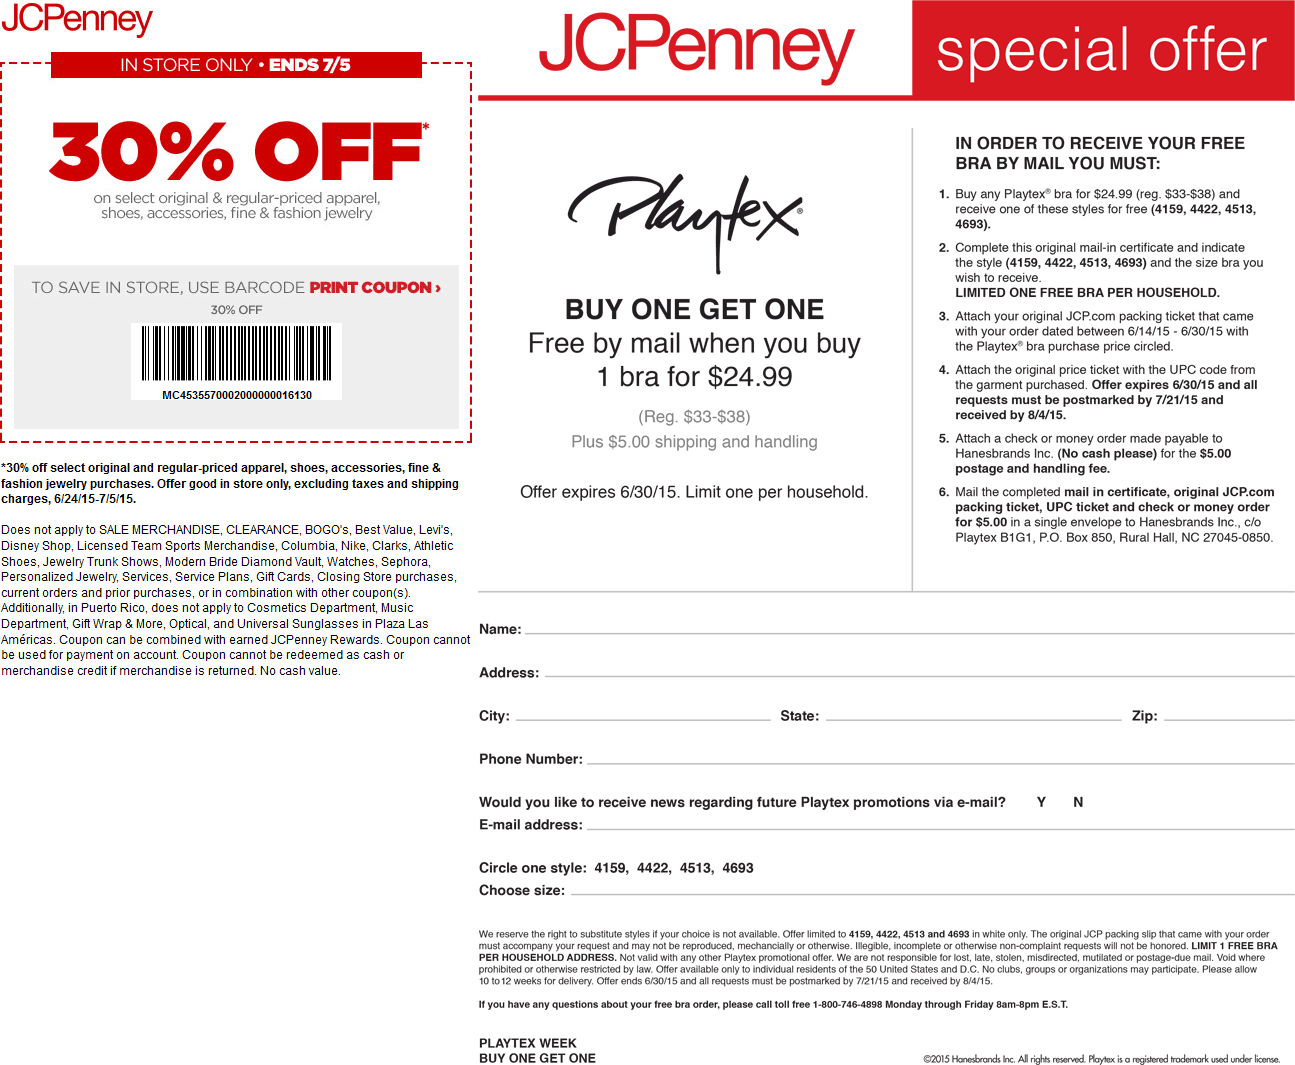 JCPenney Coupon August 2017 30% off at JCPenney - also second bra $5 by mail